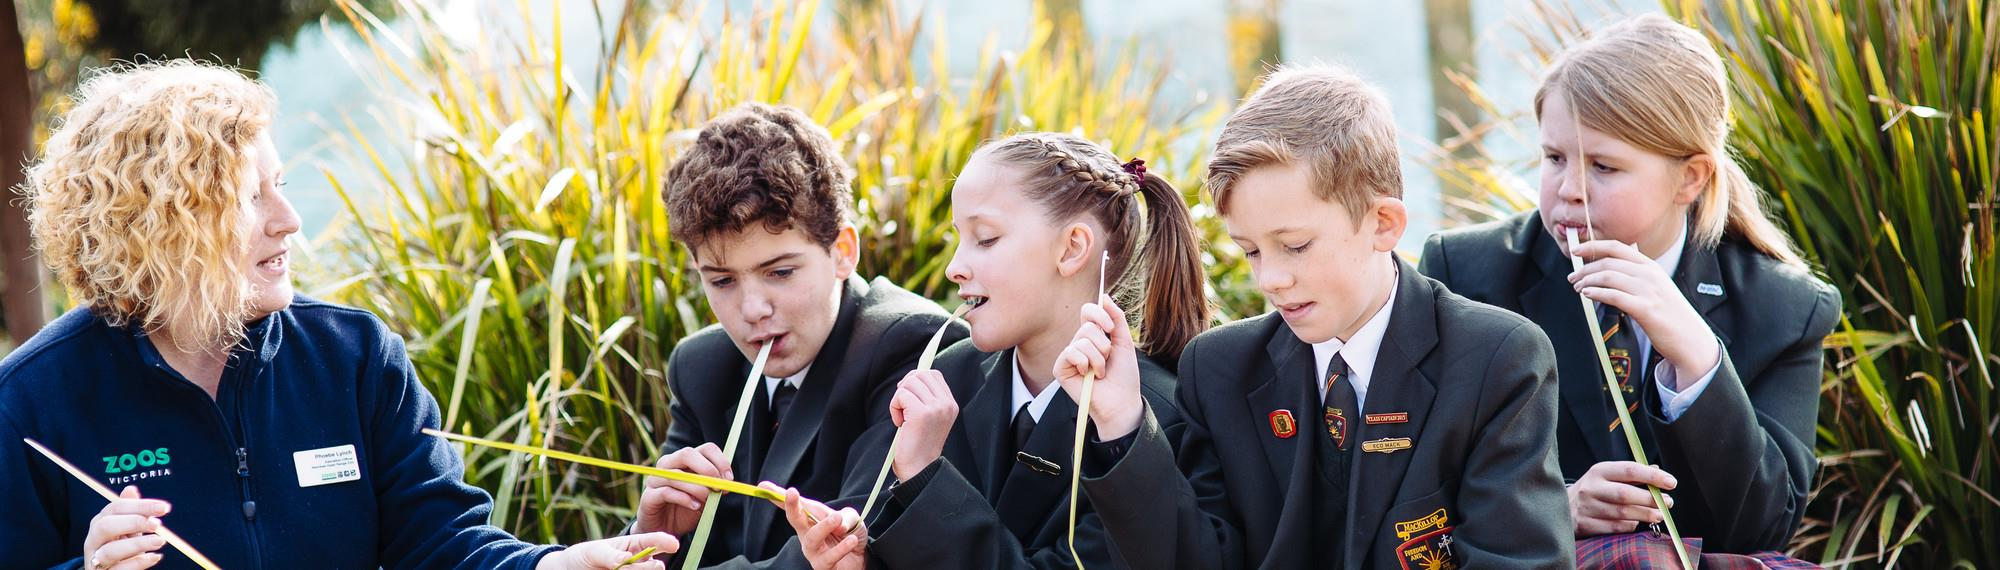 A female education officer at Werribee Zoo talking to four students while they chew native grass Lomandra.